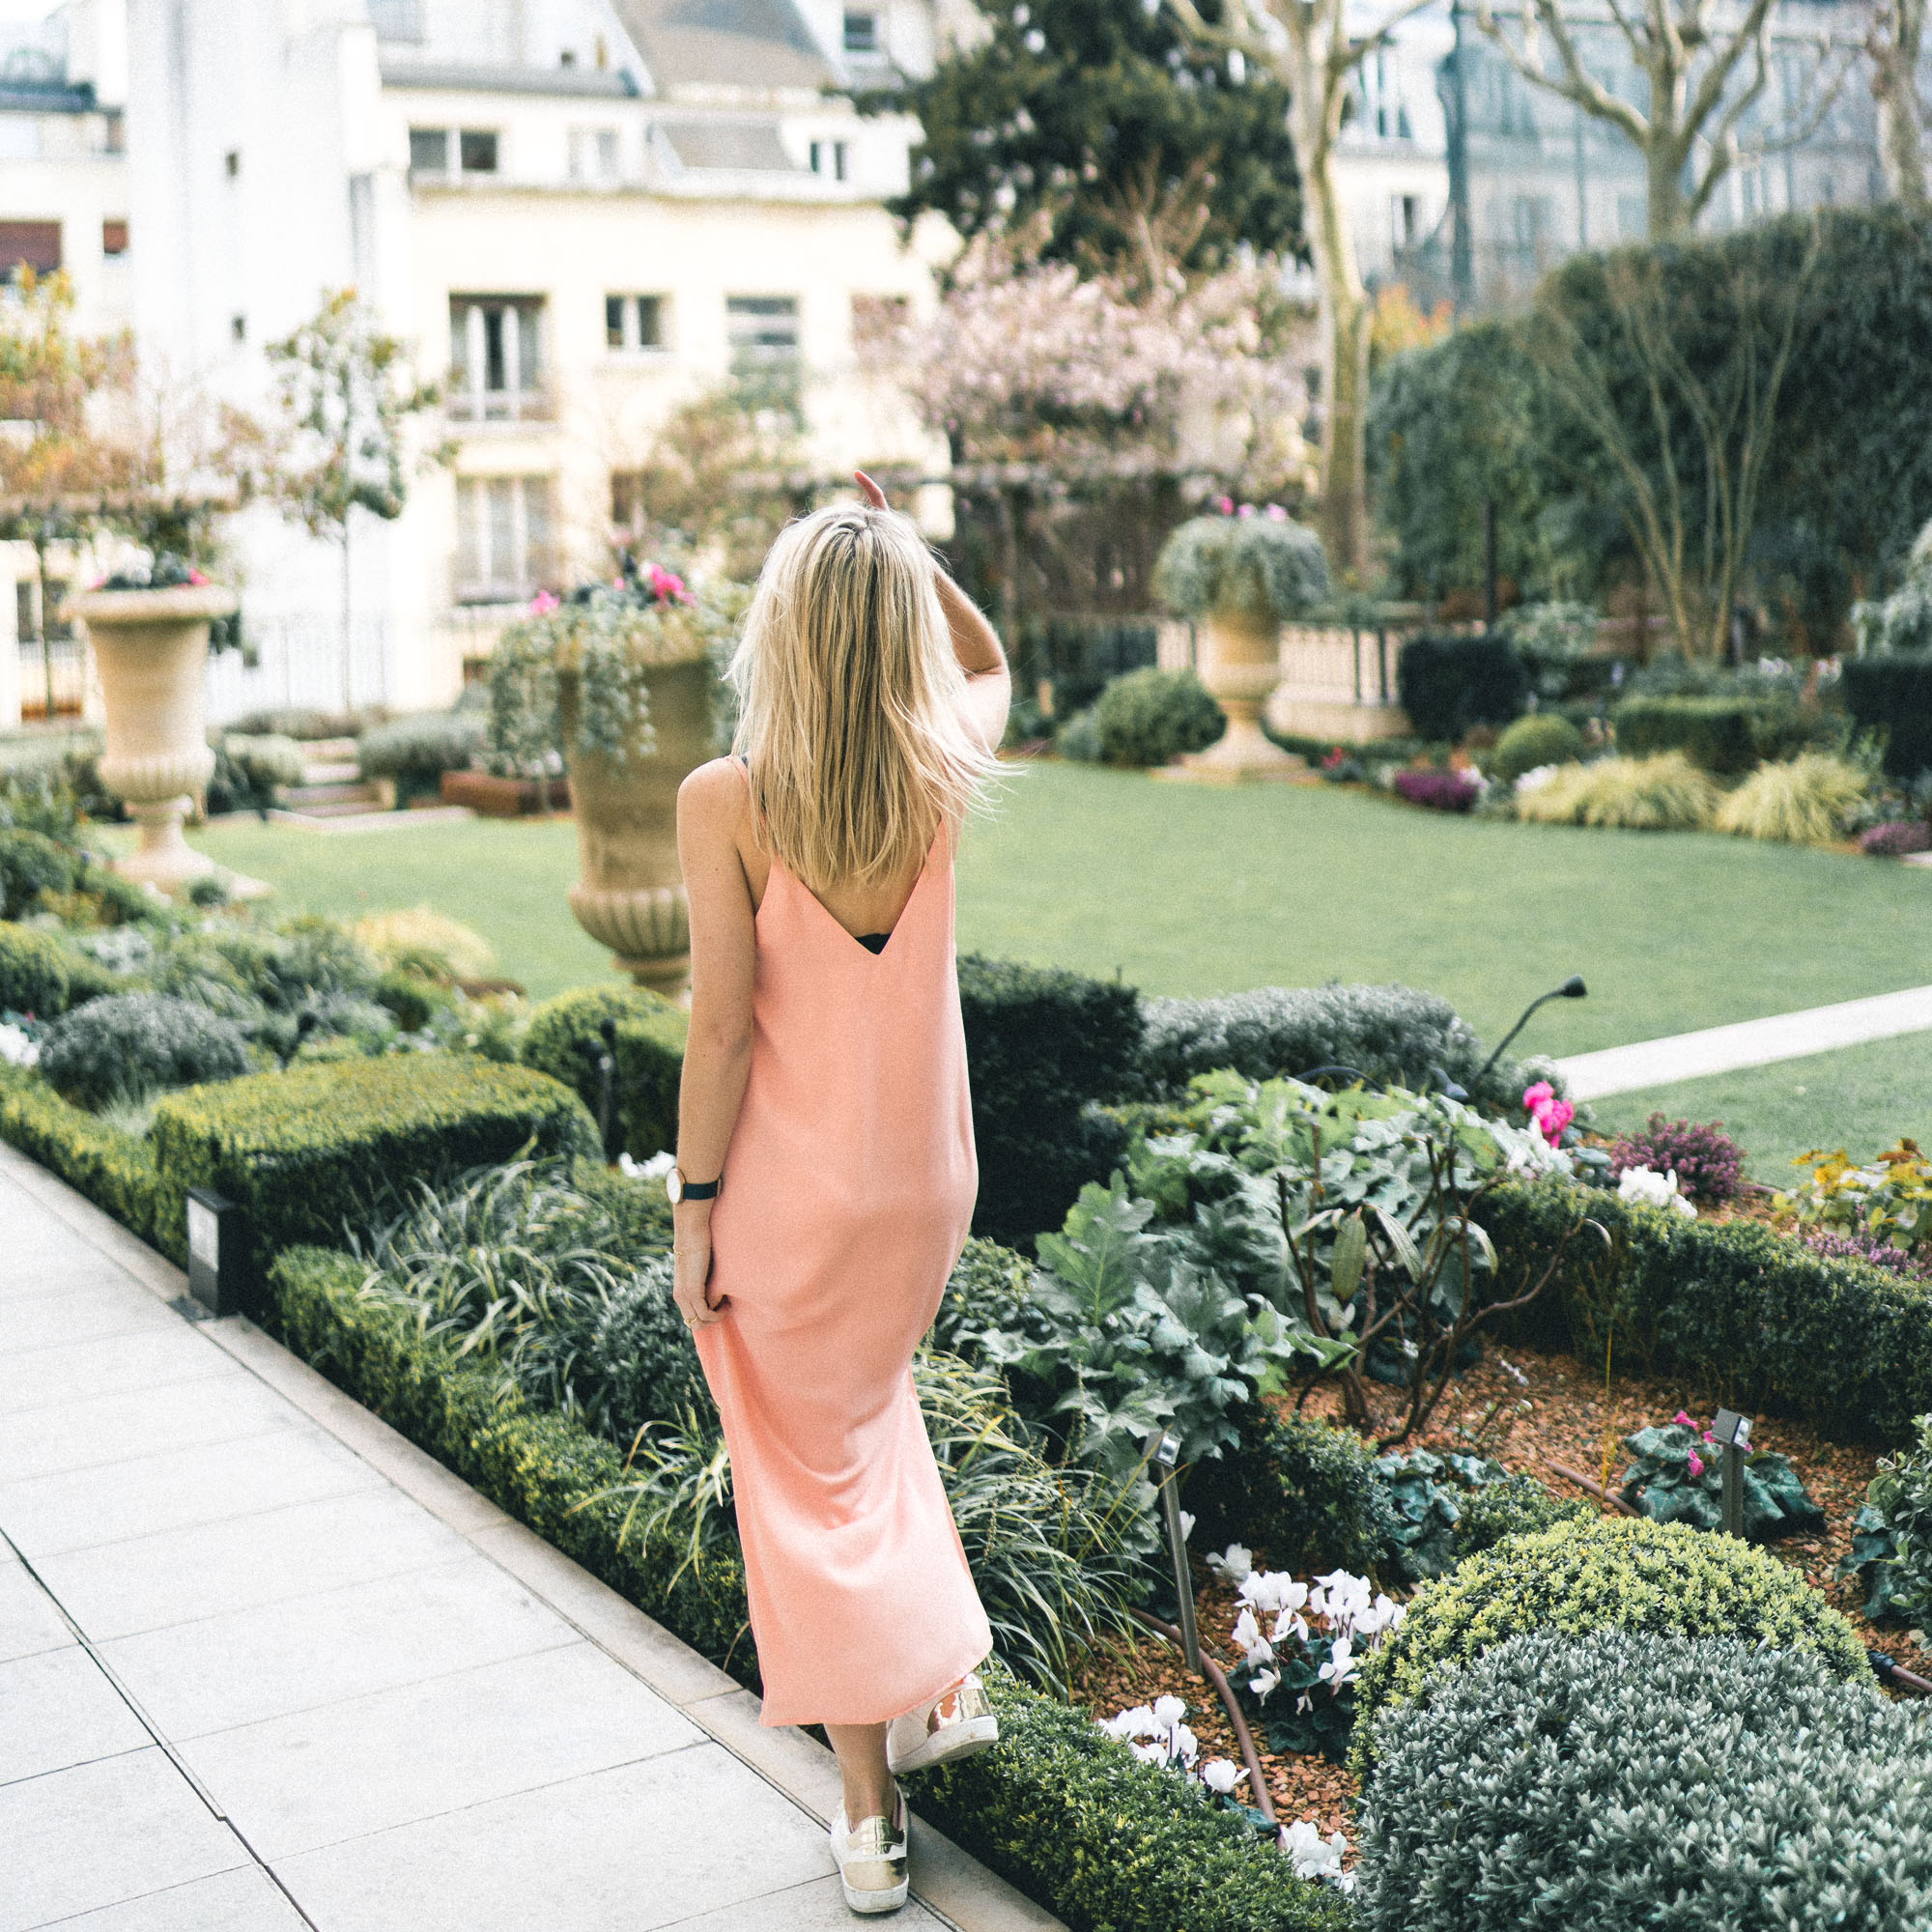 The outdoor french gardens at Shangri La Paris Hotel - Complete Paris Travel Guide